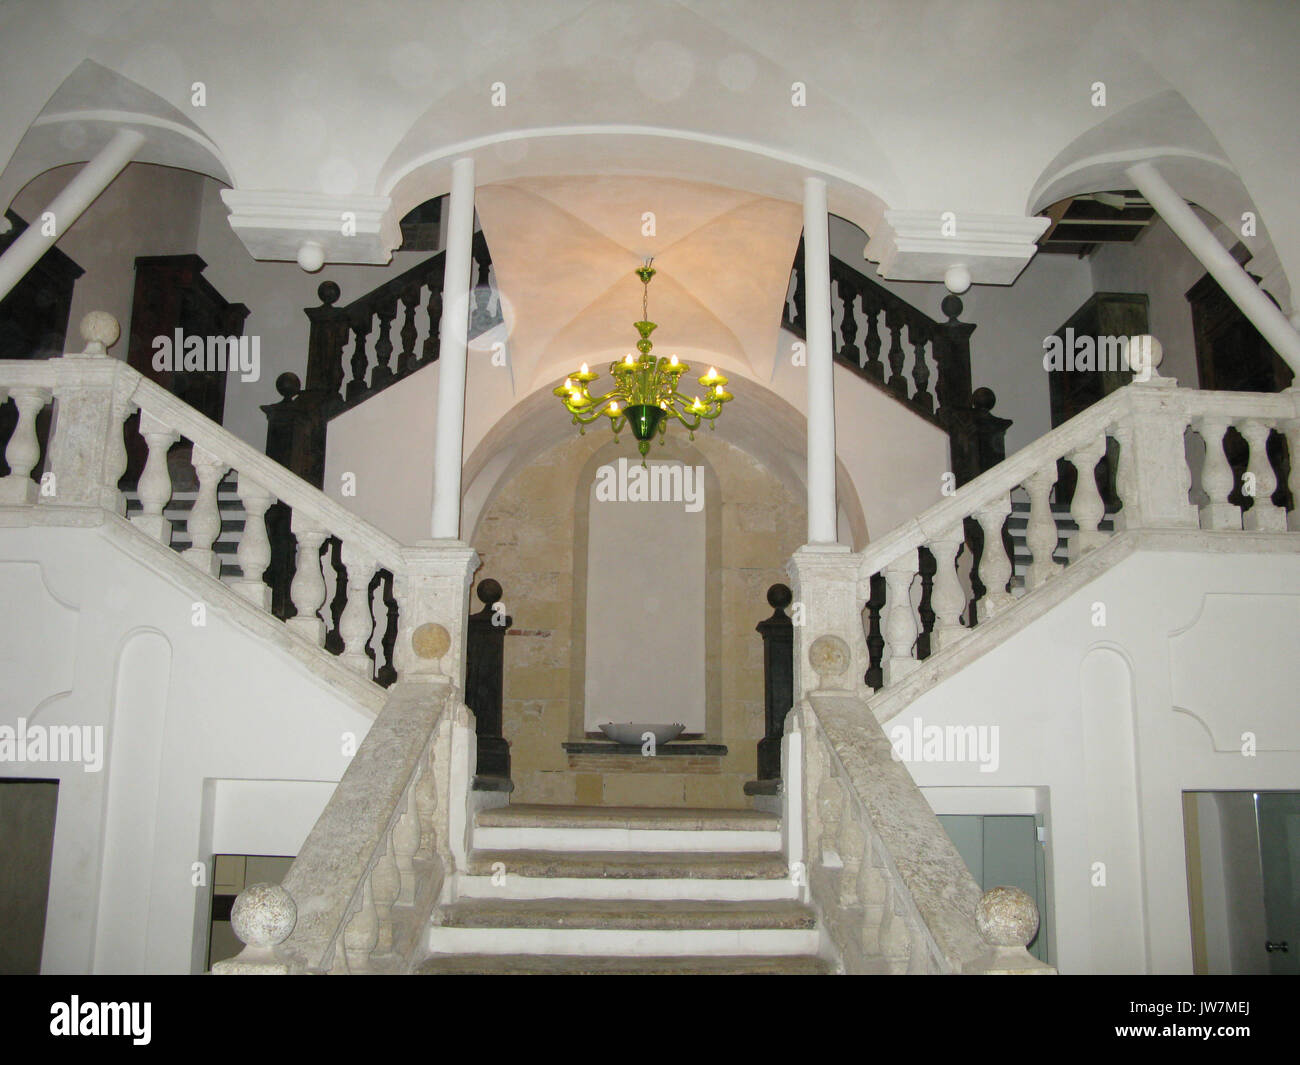 A Beautiful Marble Staircase In An Old Building Stock Photo Alamy